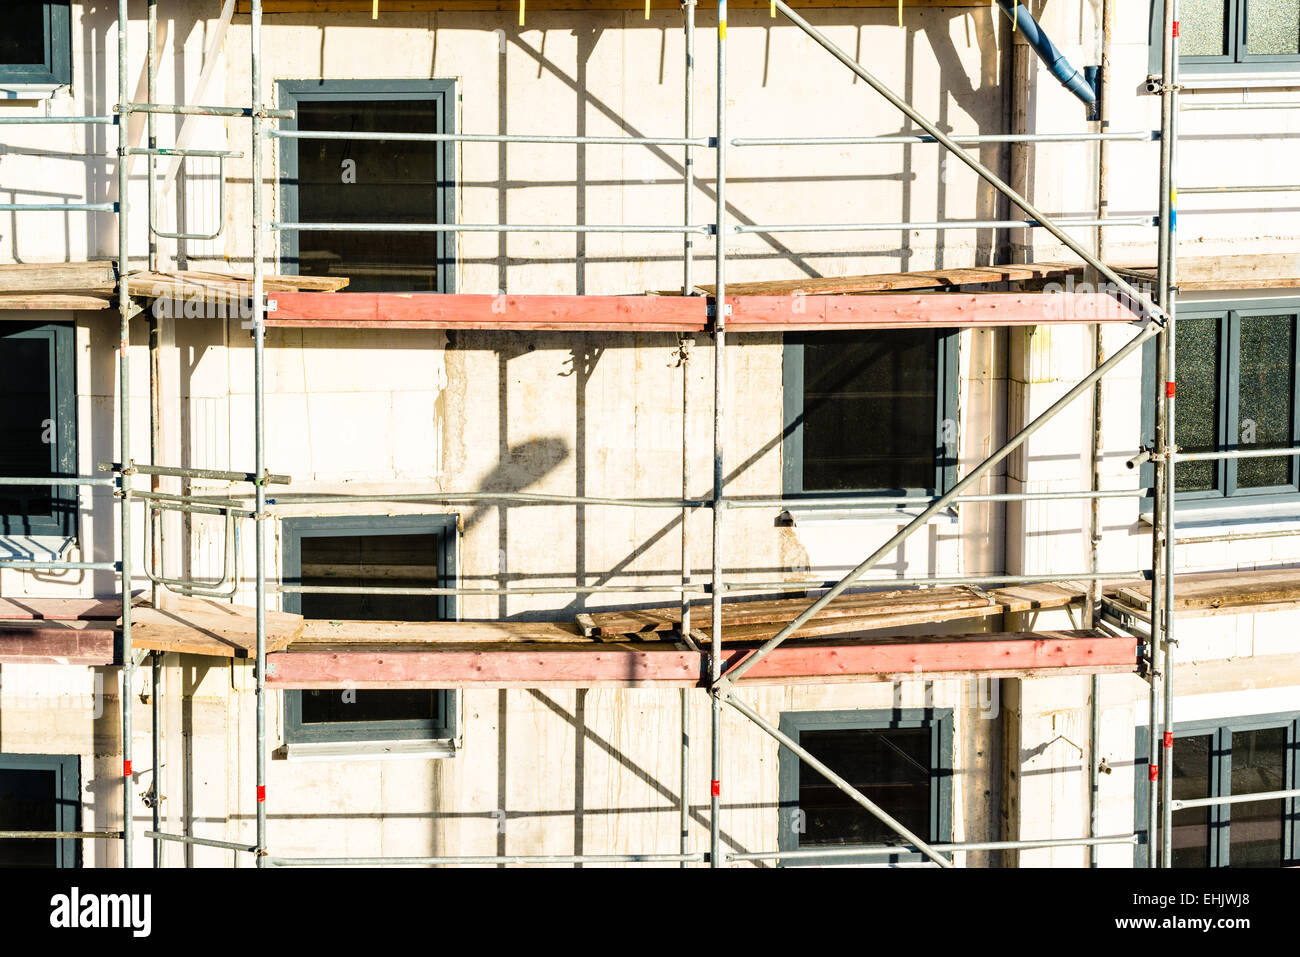 Construction of new house with scaffolding - Stock Image